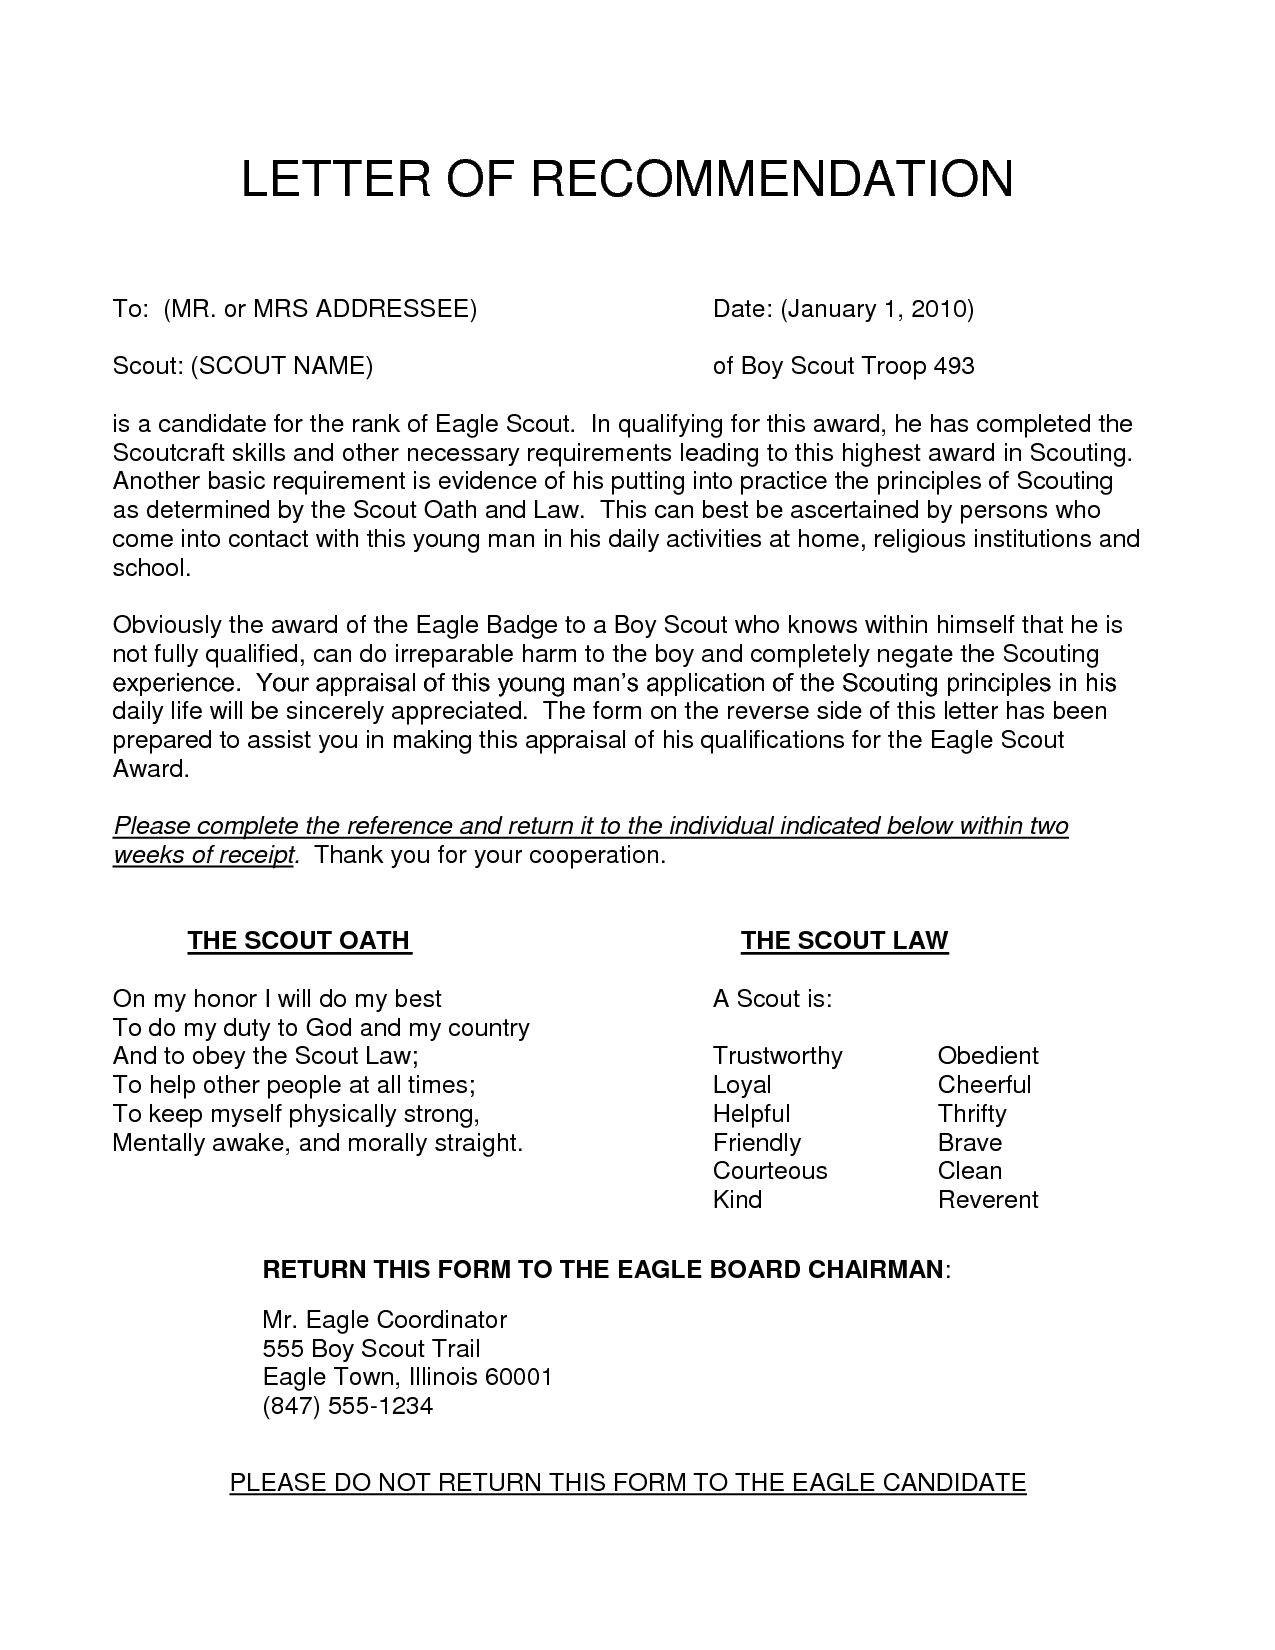 Eagle Scout Recommendation Letter Request Template